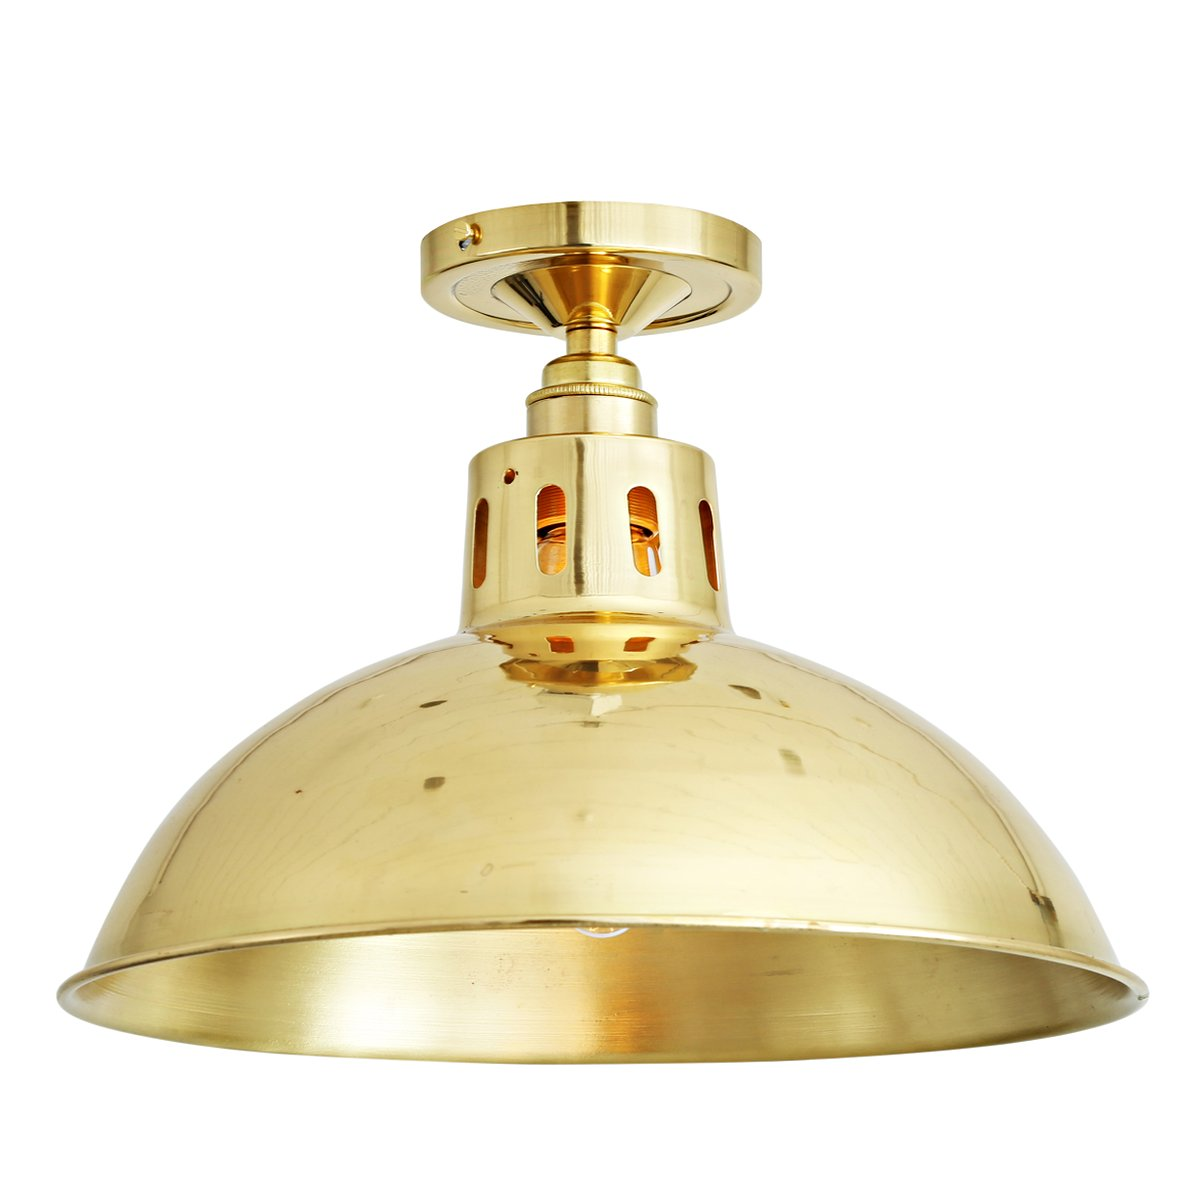 Deckenleuchte Industrial Industrial Ceiling Light Made Of Brass Casa Lumi